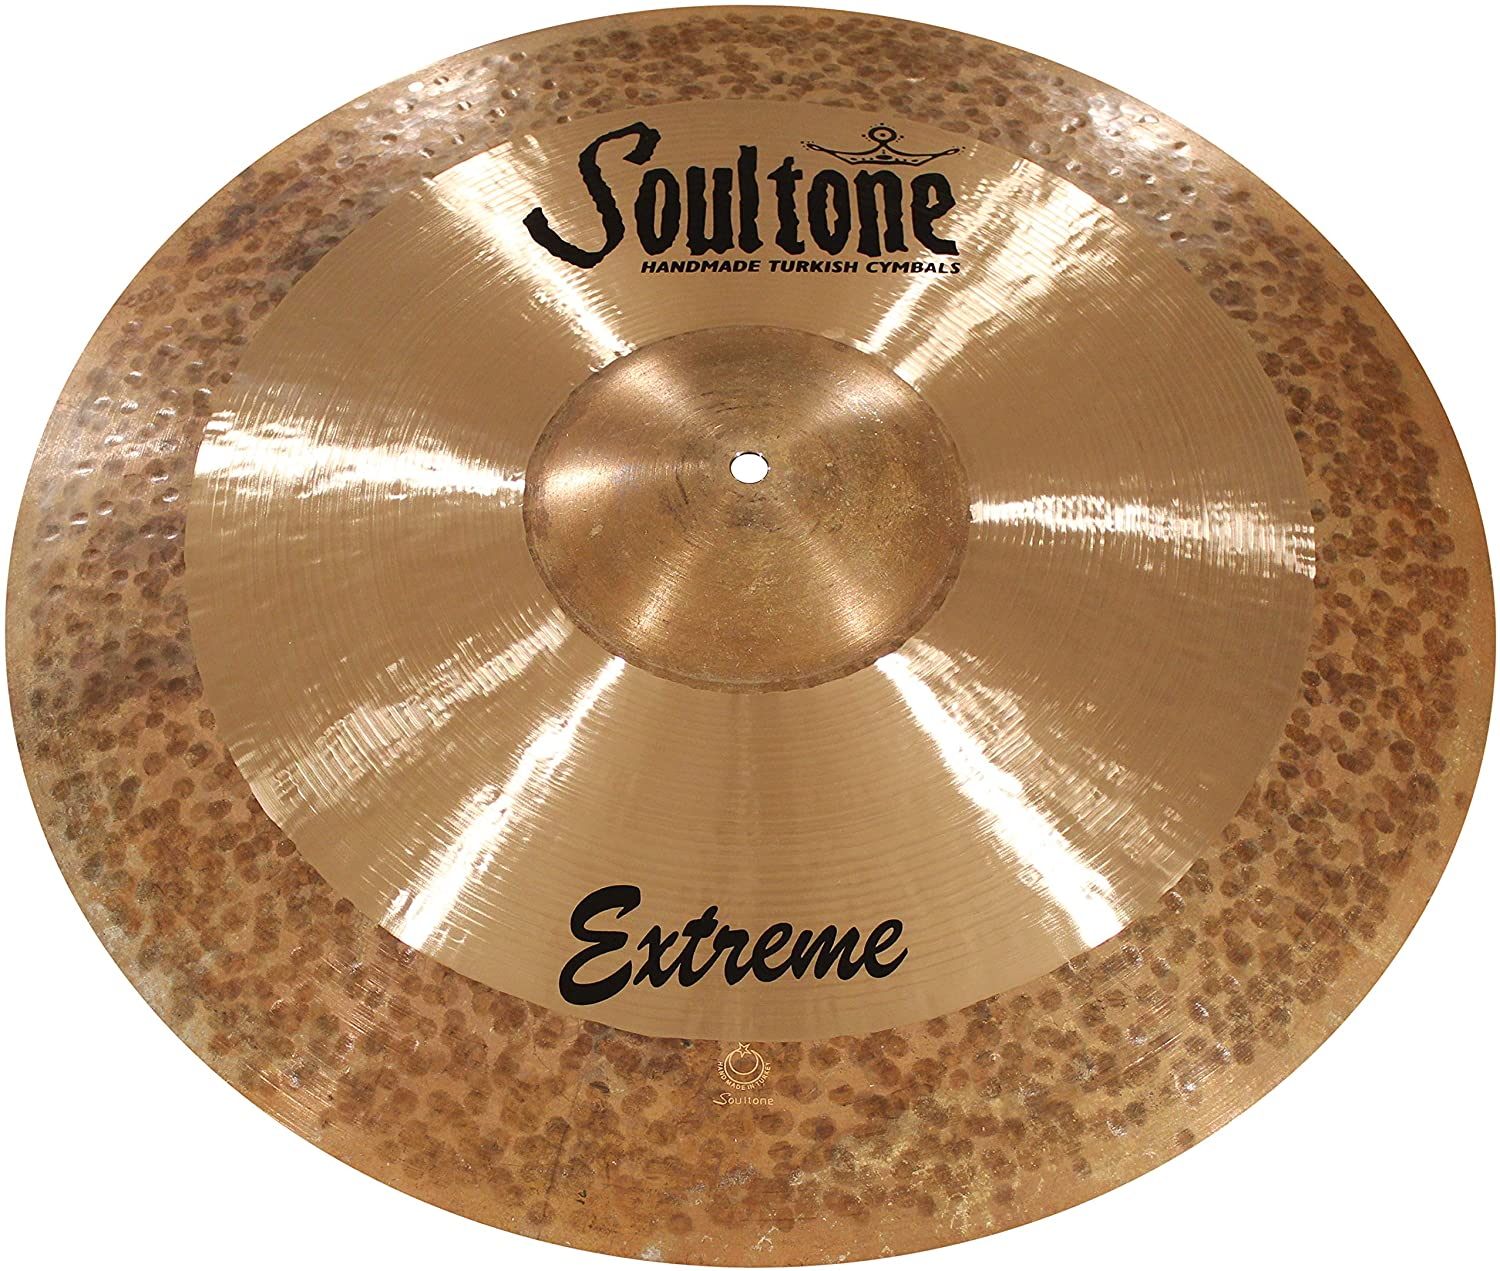 Soultone Cymbals Extreme, 20.5 inches Crash Ride Cymbal ((EXT-CRR20.5